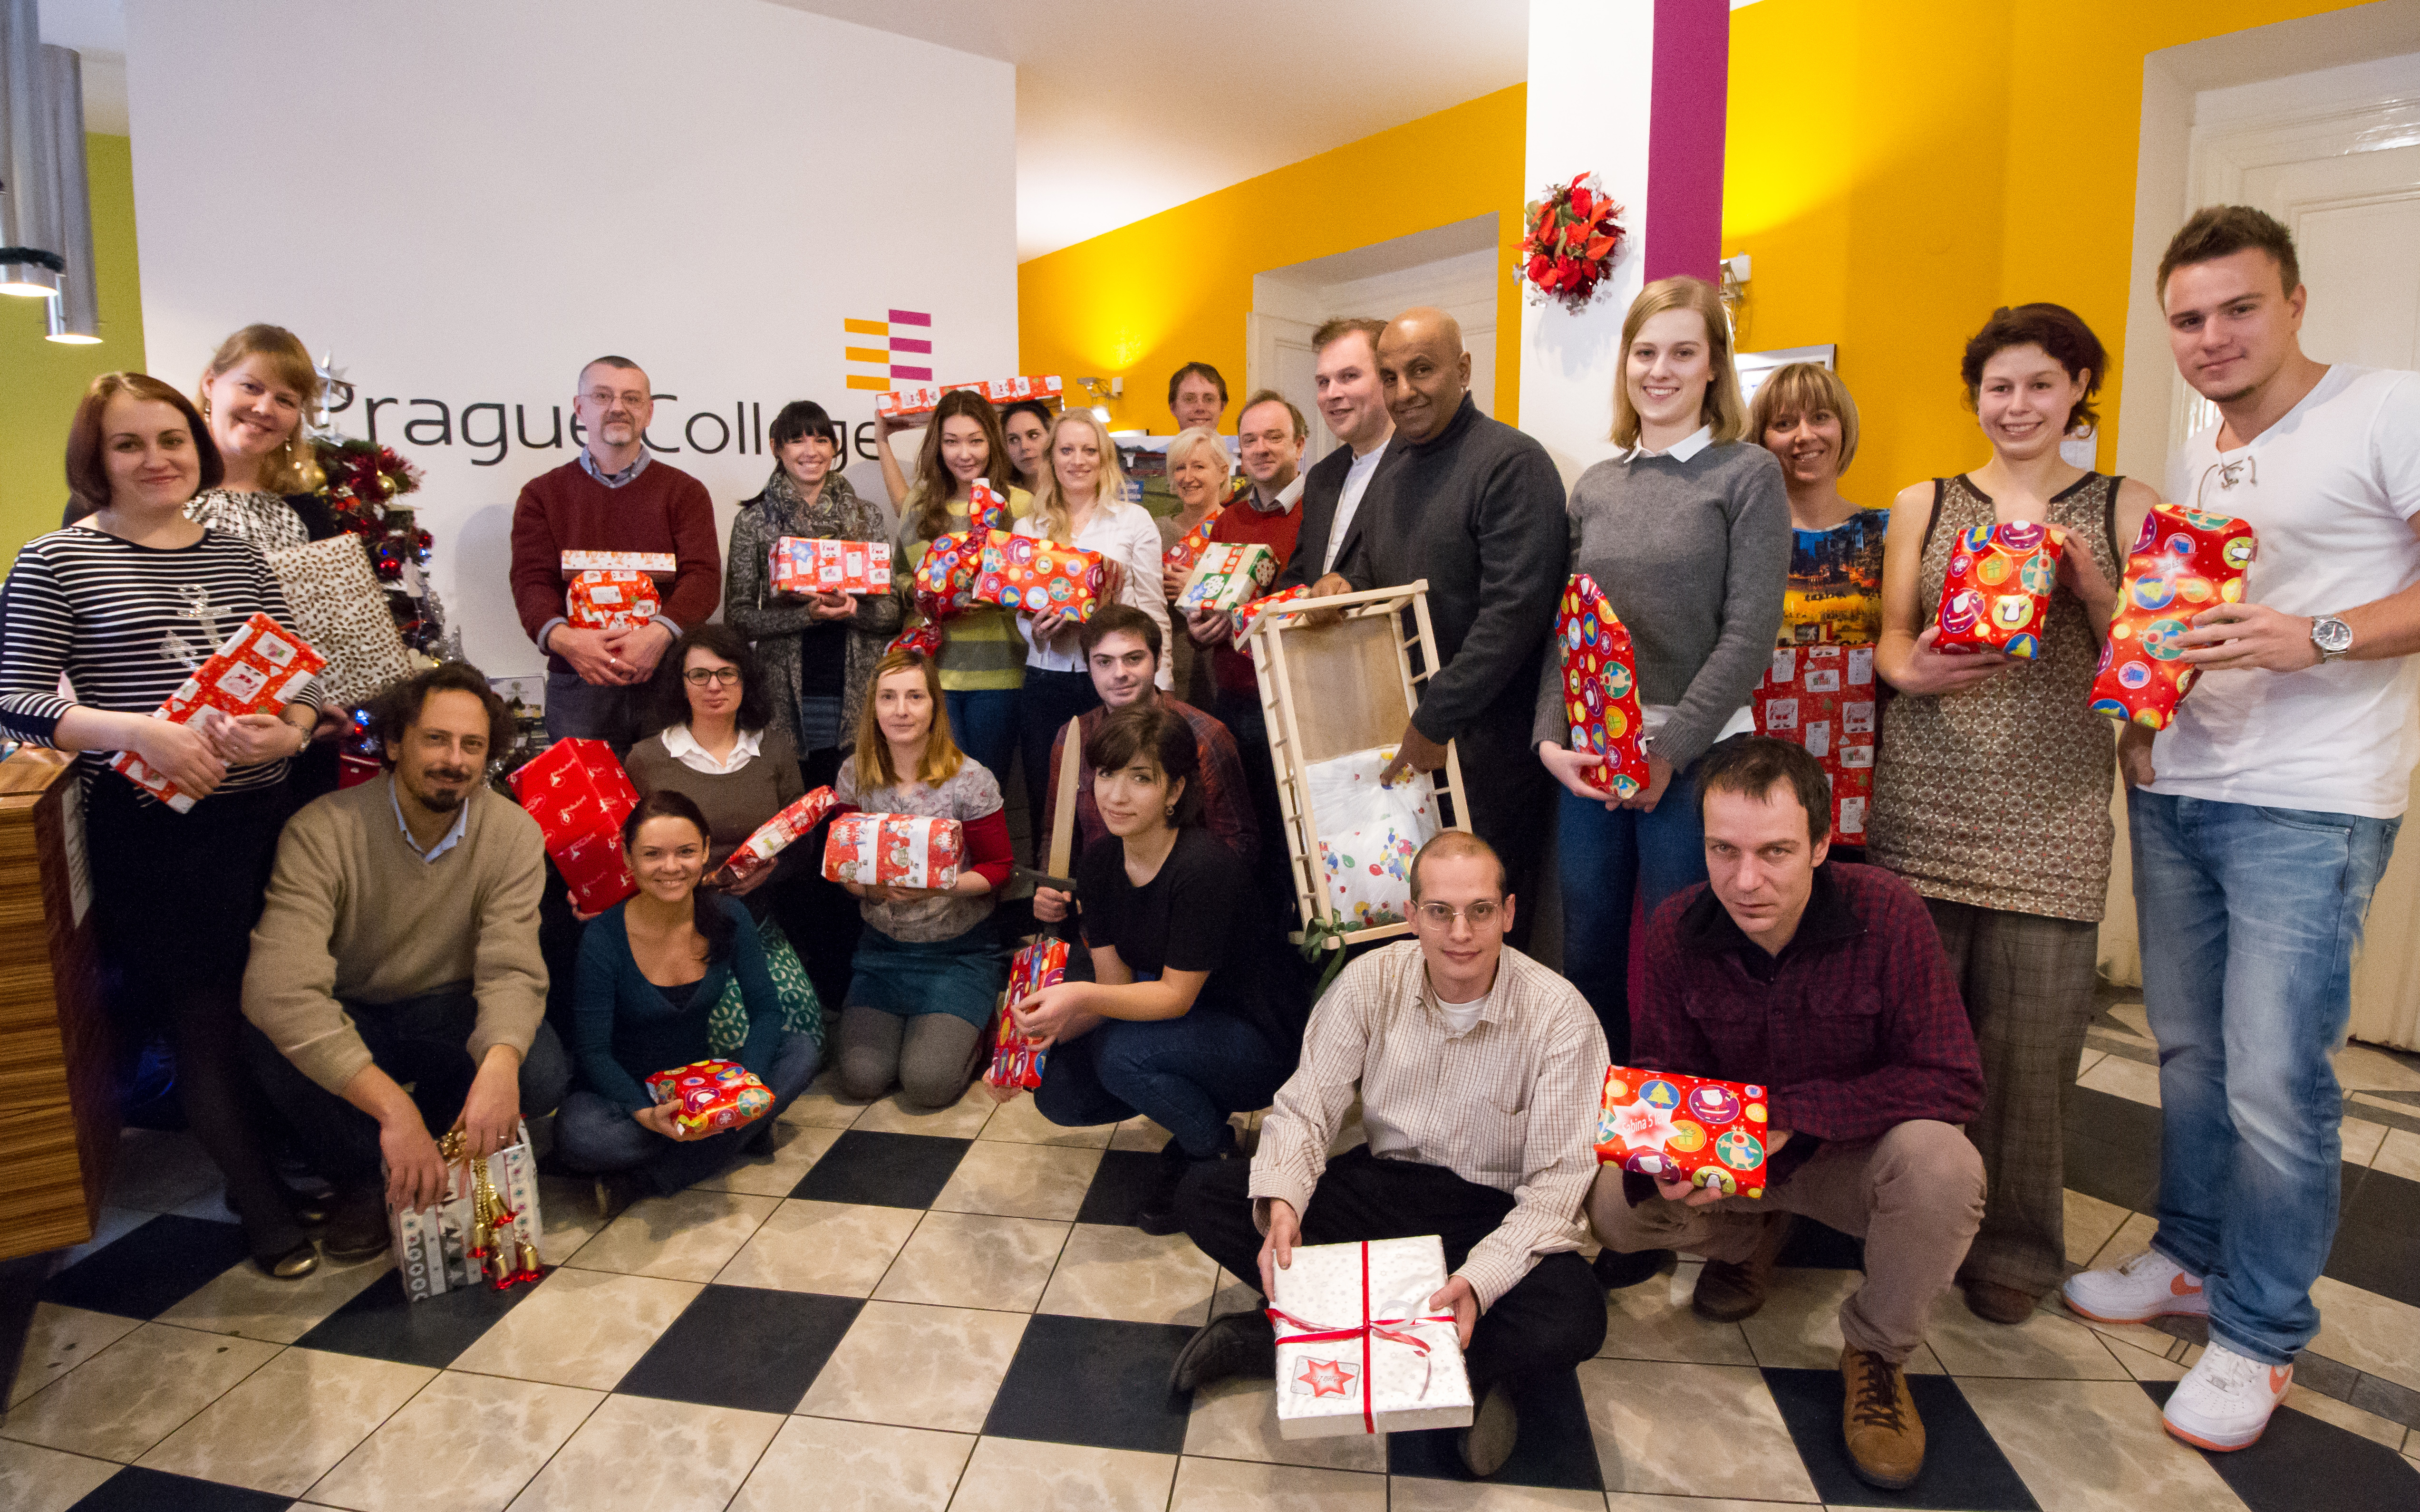 A very happy Christmas from Prague College!